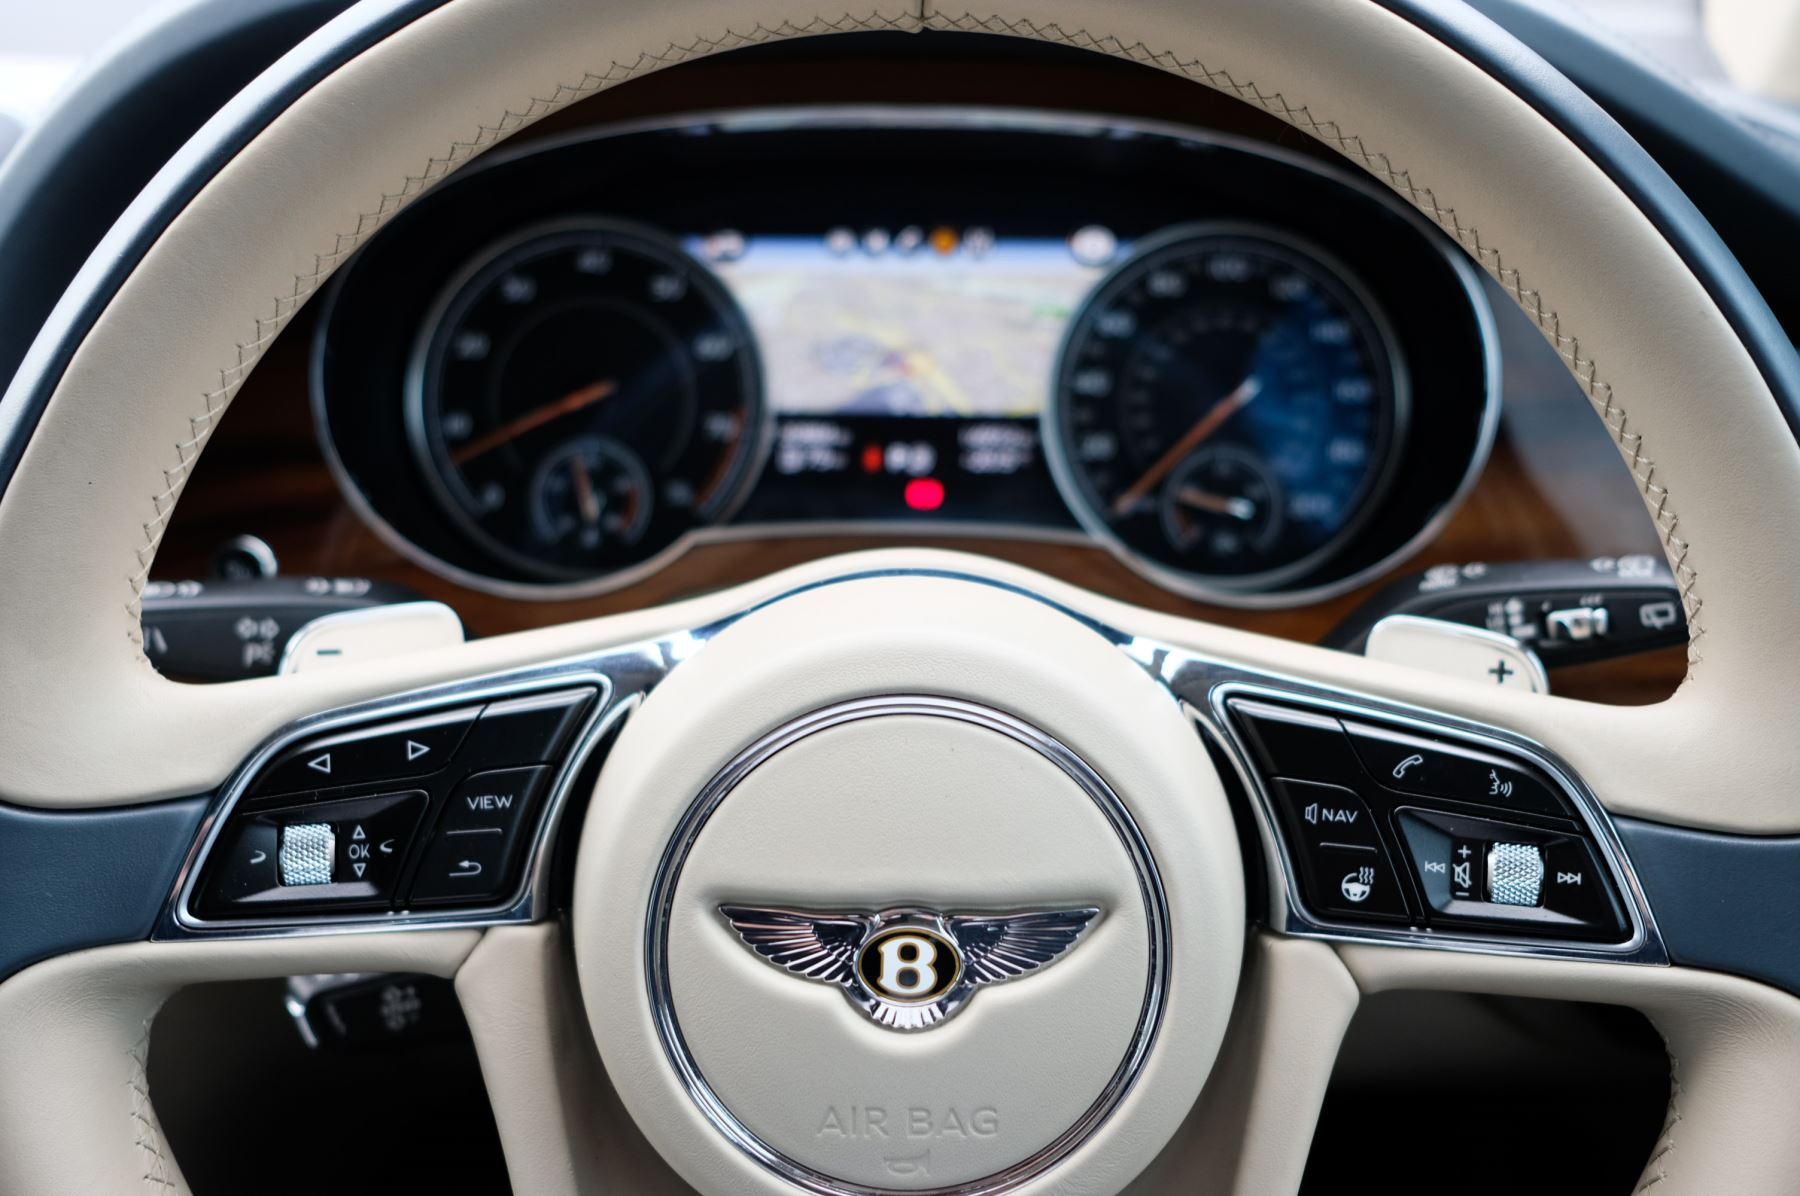 Bentley Bentayga 4.0 V8 - Mulliner Driving Specification with 22 Inch Directional - Black Painted and Polished Alloys image 16